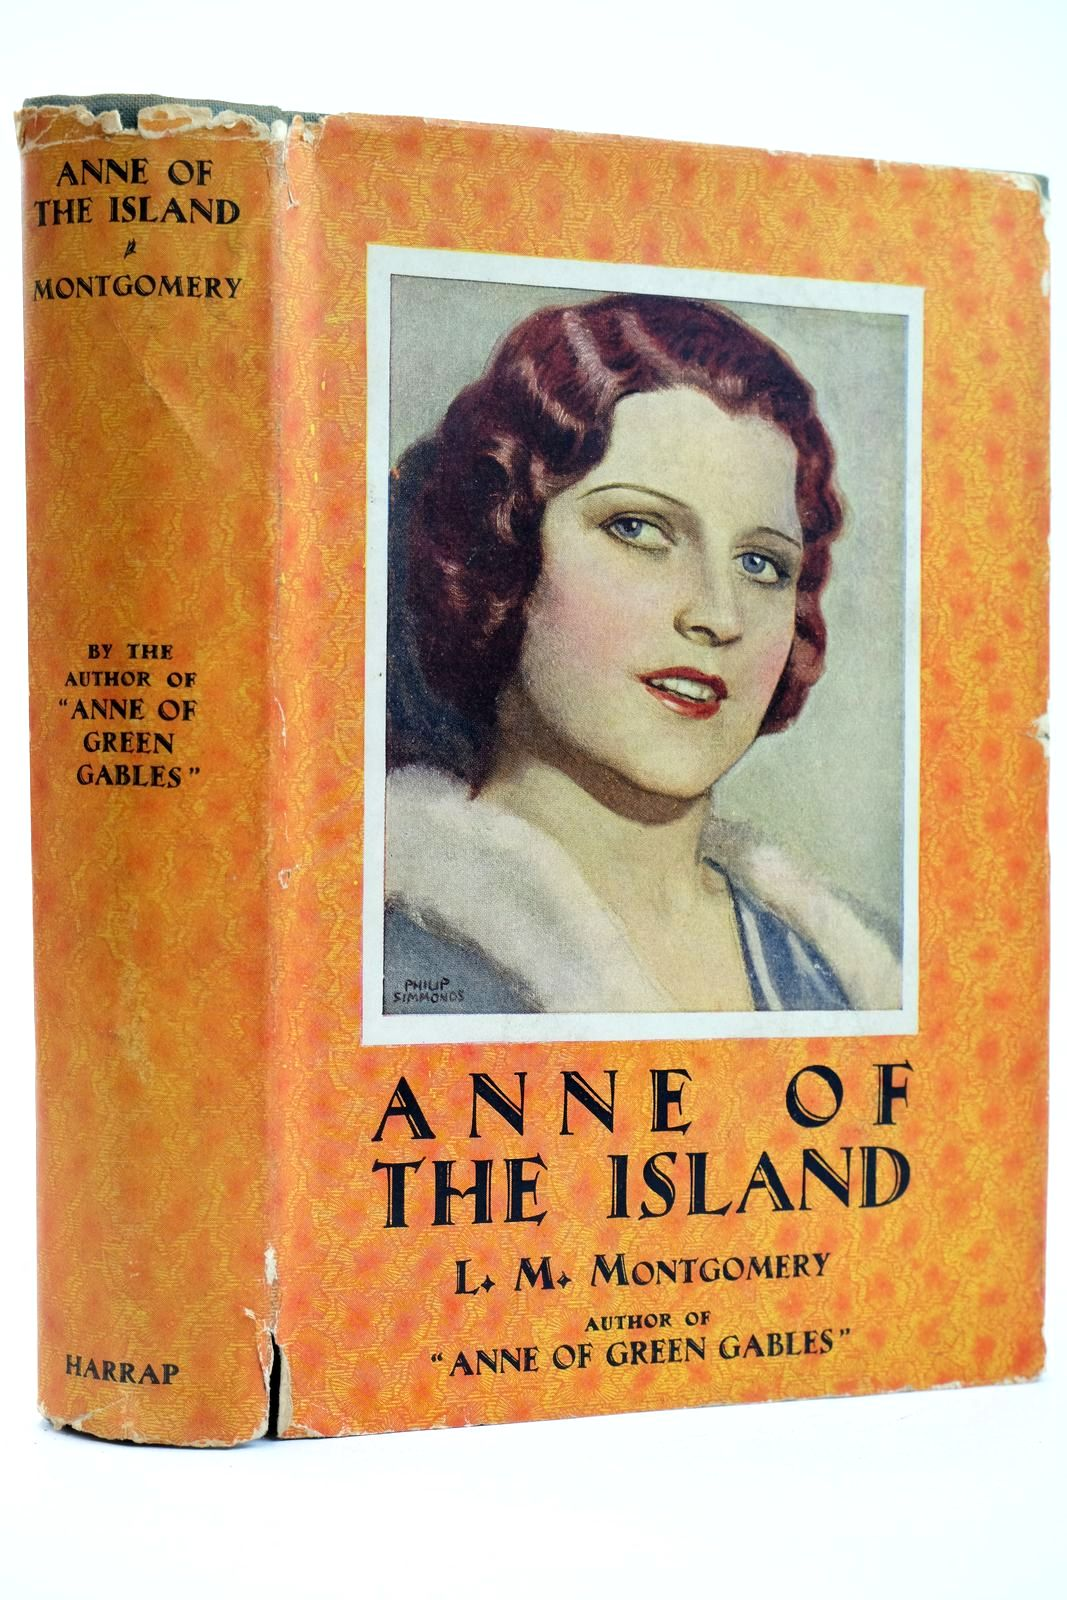 Photo of ANNE OF THE ISLAND written by Montgomery, L.M. published by George G. Harrap & Co. Ltd. (STOCK CODE: 2131792)  for sale by Stella & Rose's Books